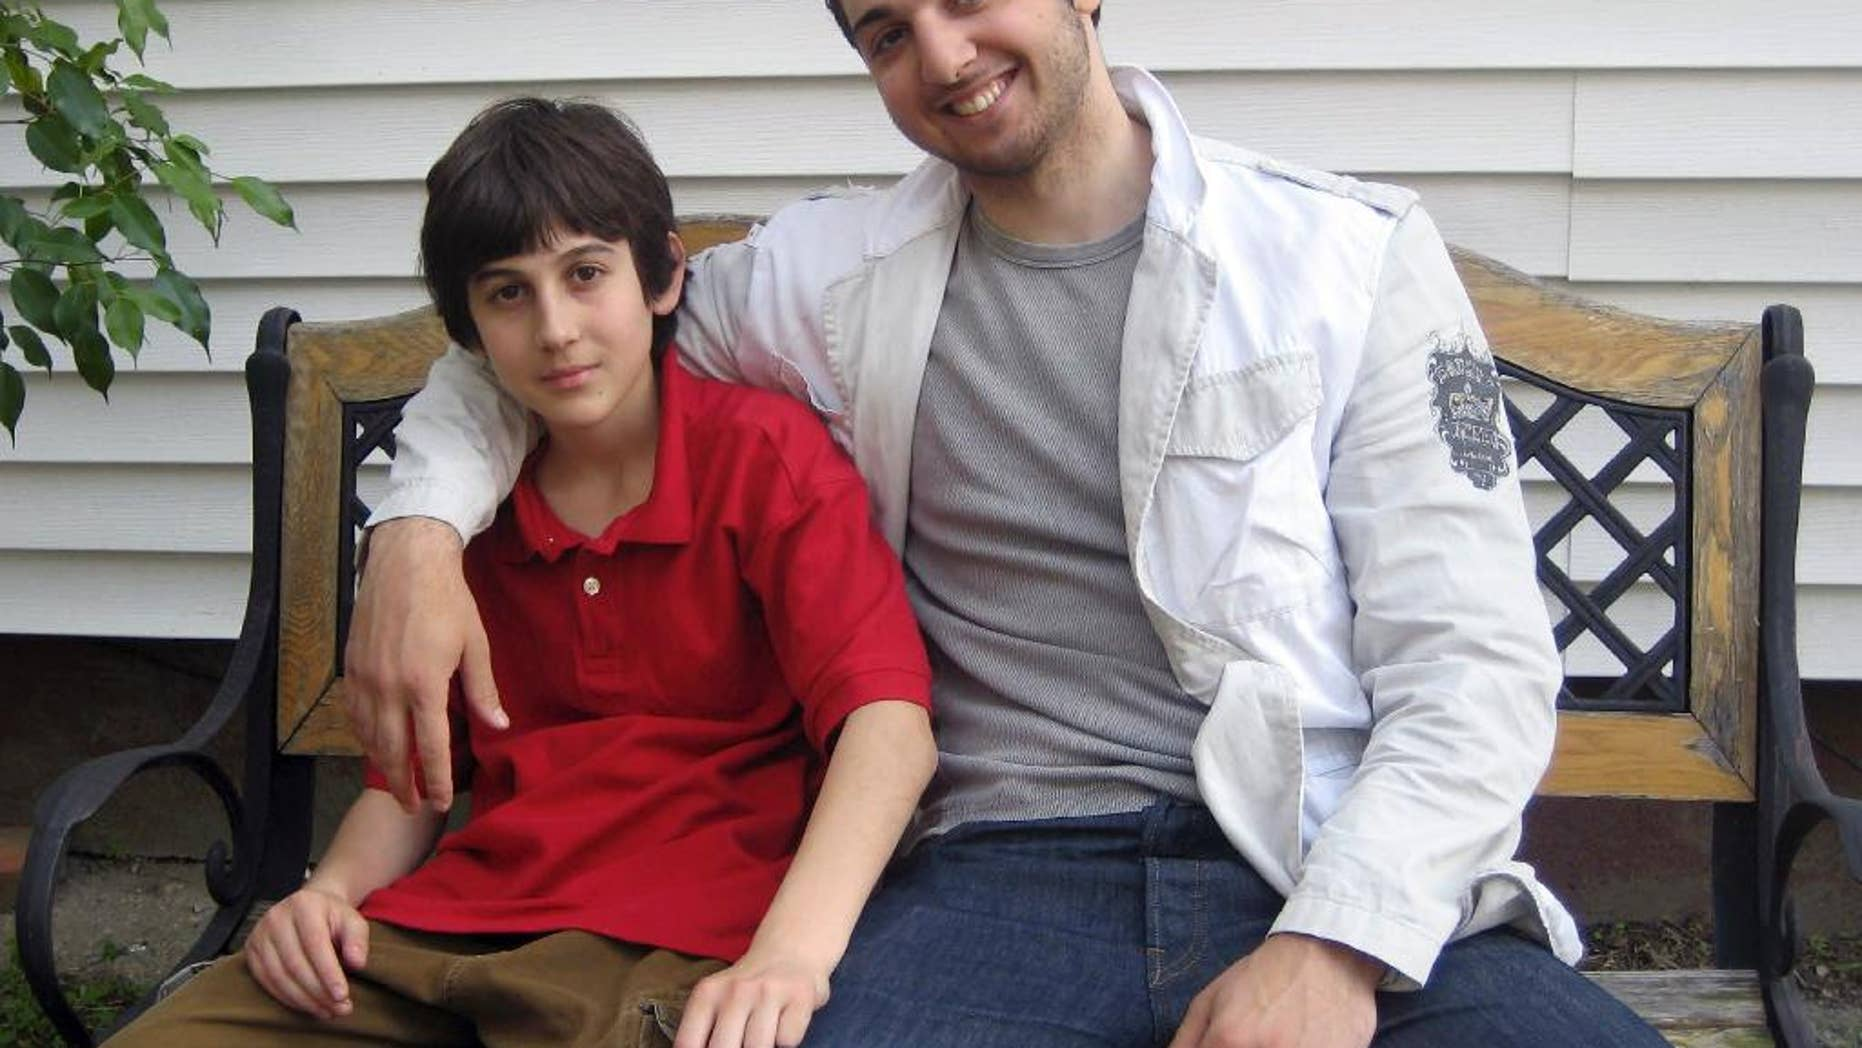 This undated photo released Wednesday, April 29, 2015, by the Federal Public Defender Office and presented as evidence during the penalty phase in the trial of Dzhokhar Tsarnaev in Boston, brothers Dzhokhar, left, and Tamerlan Tsarnaev sit together at an unknown location. Dzhokhar Tsarnaev was convicted of the Boston Marathon bombings that killed three and injured more than 260 spectators in April 2013. Tamerlan Tsarnaev died in a firefight with police days after the bombings. (AP Photo/Federal Public Defender Office)